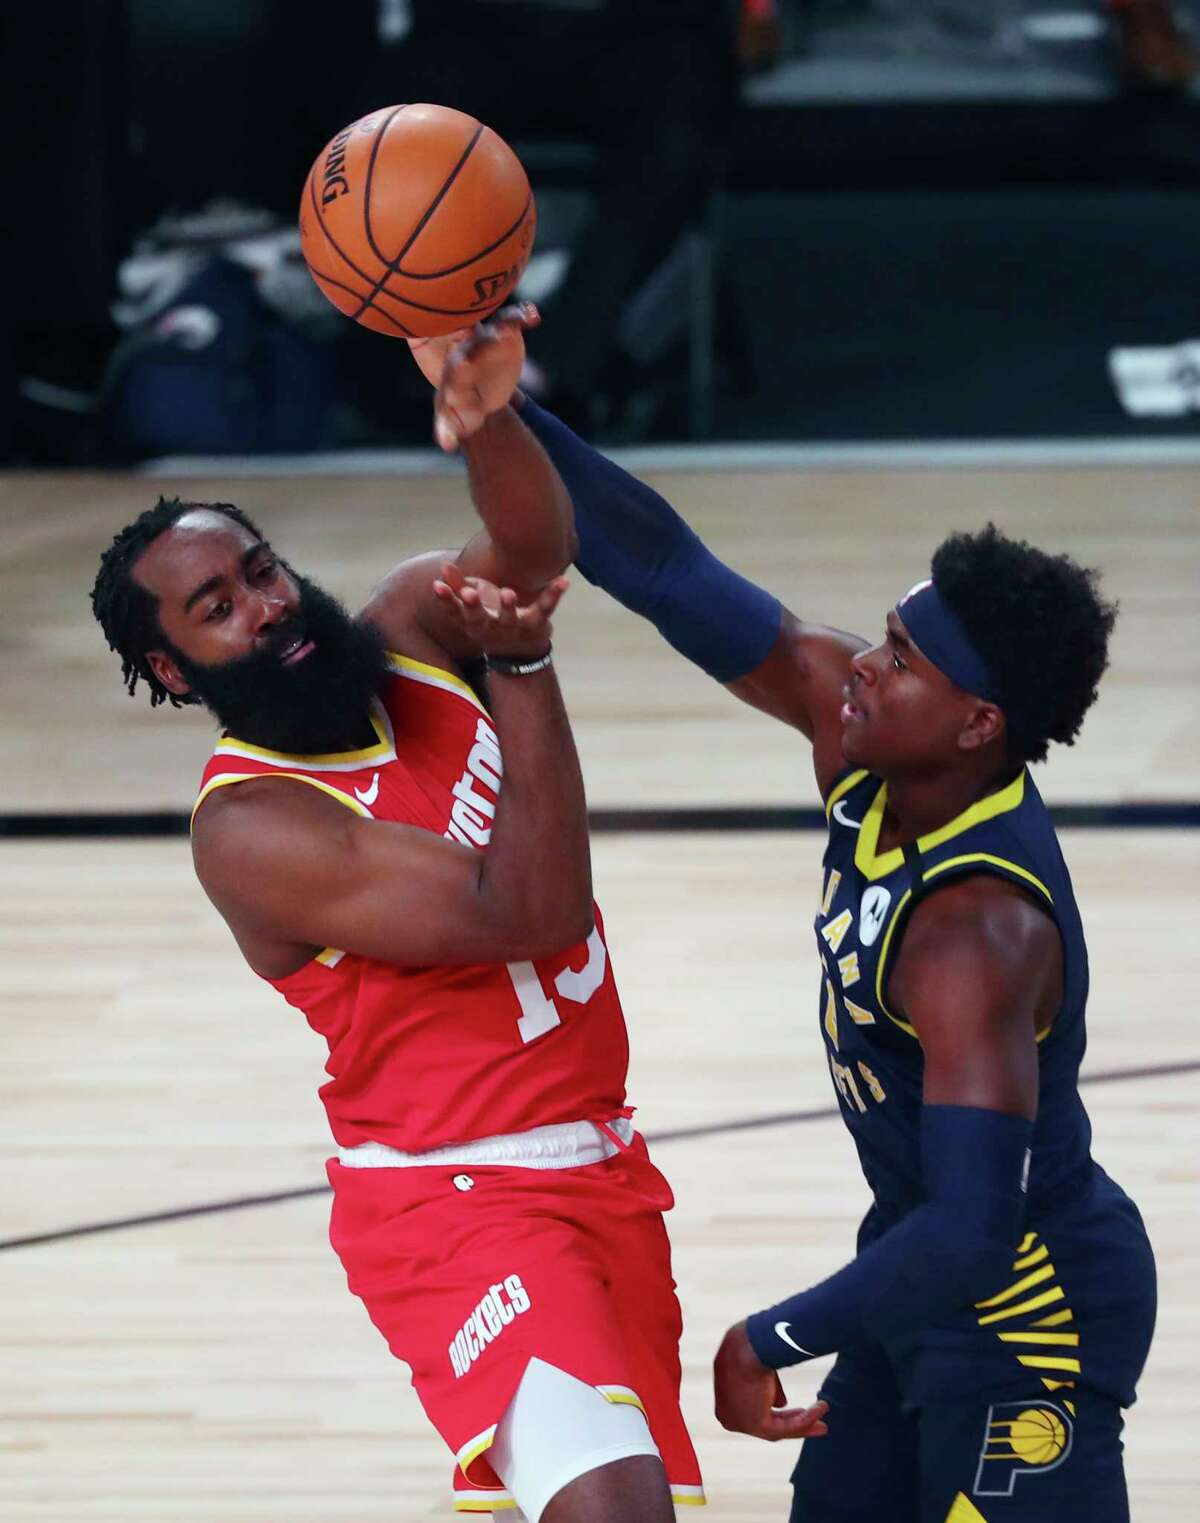 Houston Rockets guard James Harden (13) passes the ball away from Indiana Pacers guard Victor Oladipo (4) in the first half of an NBA basketball game Wednesday, Aug. 12, 2020, in Lake Buena Vista, Fla. (Kim Klement/Pool Photo via AP)